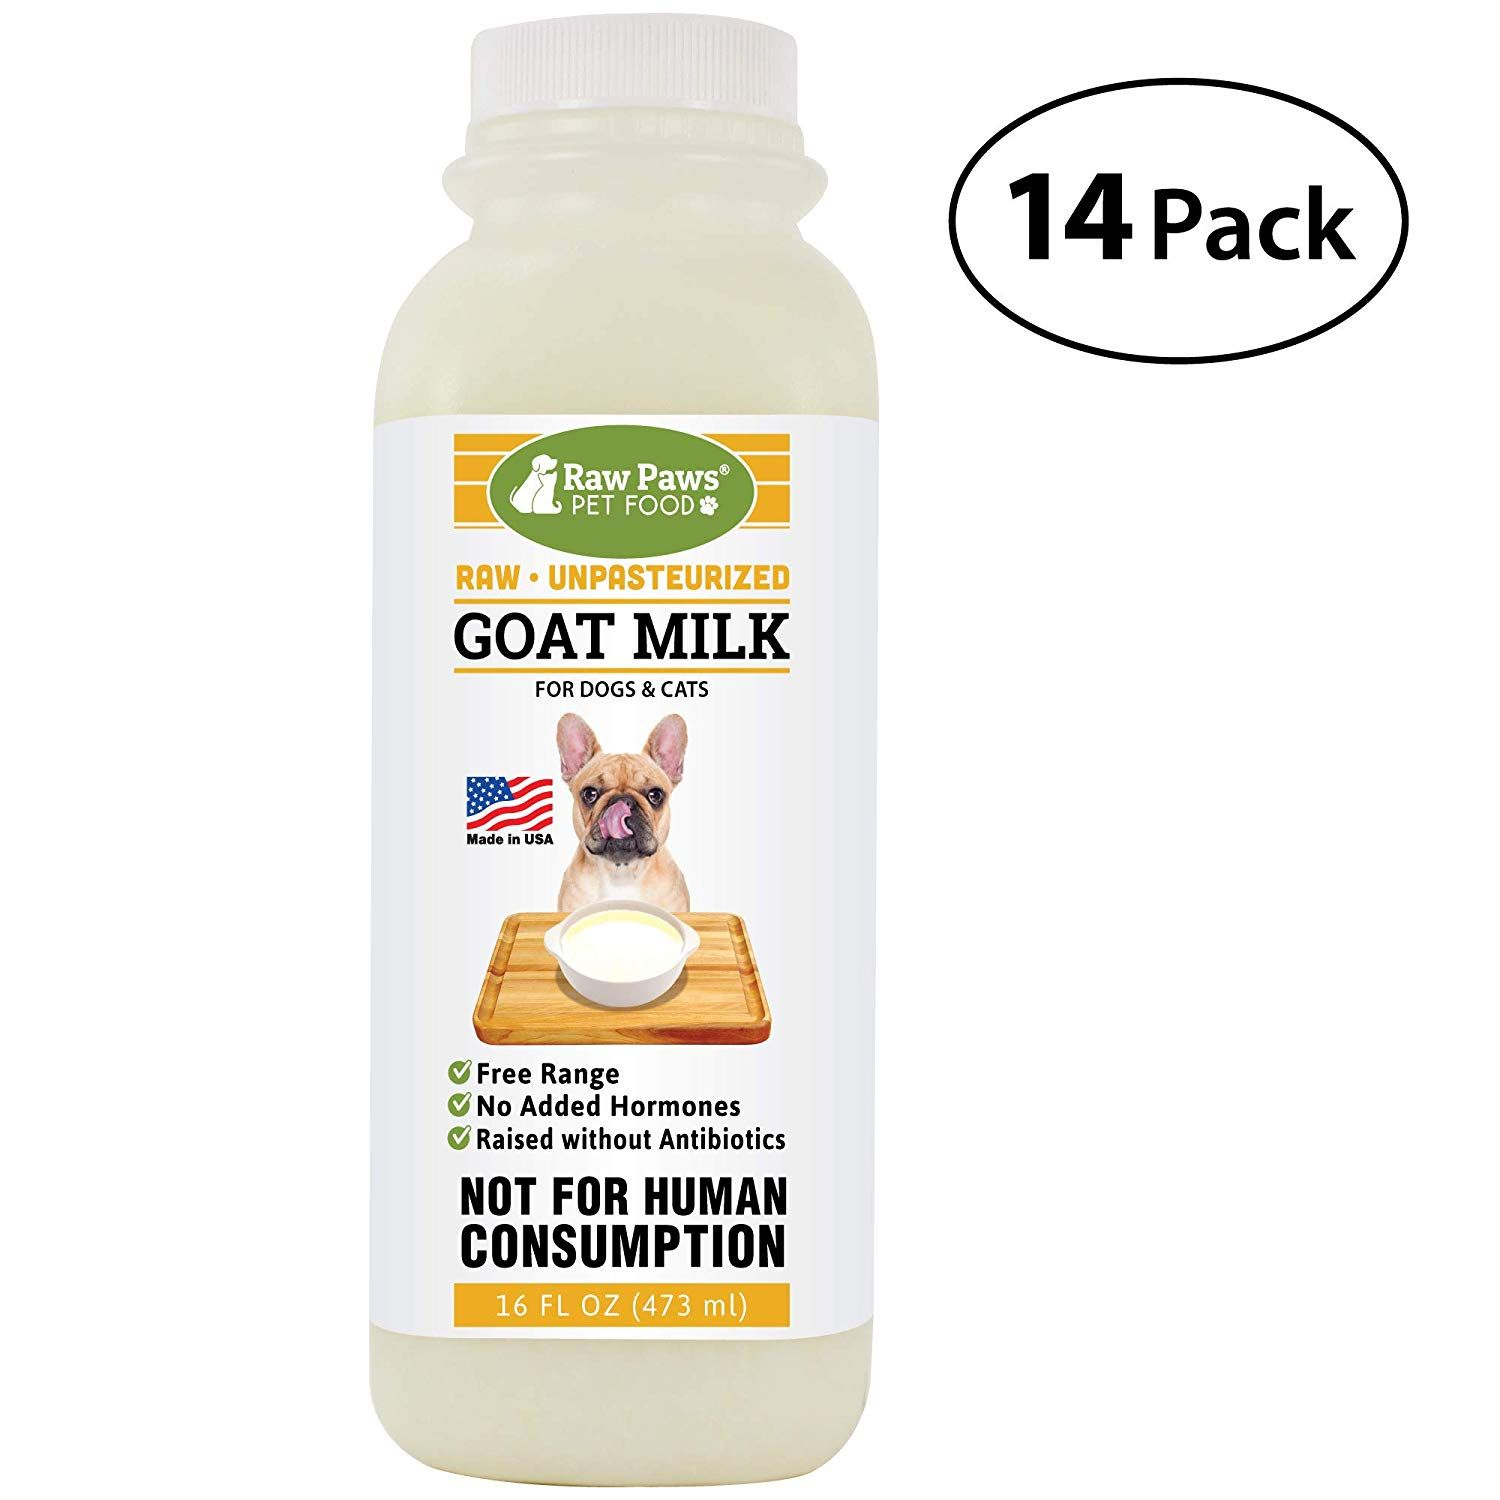 Raw Paws Pet Frozen Raw Goats Milk Dogs Cats Dog Food